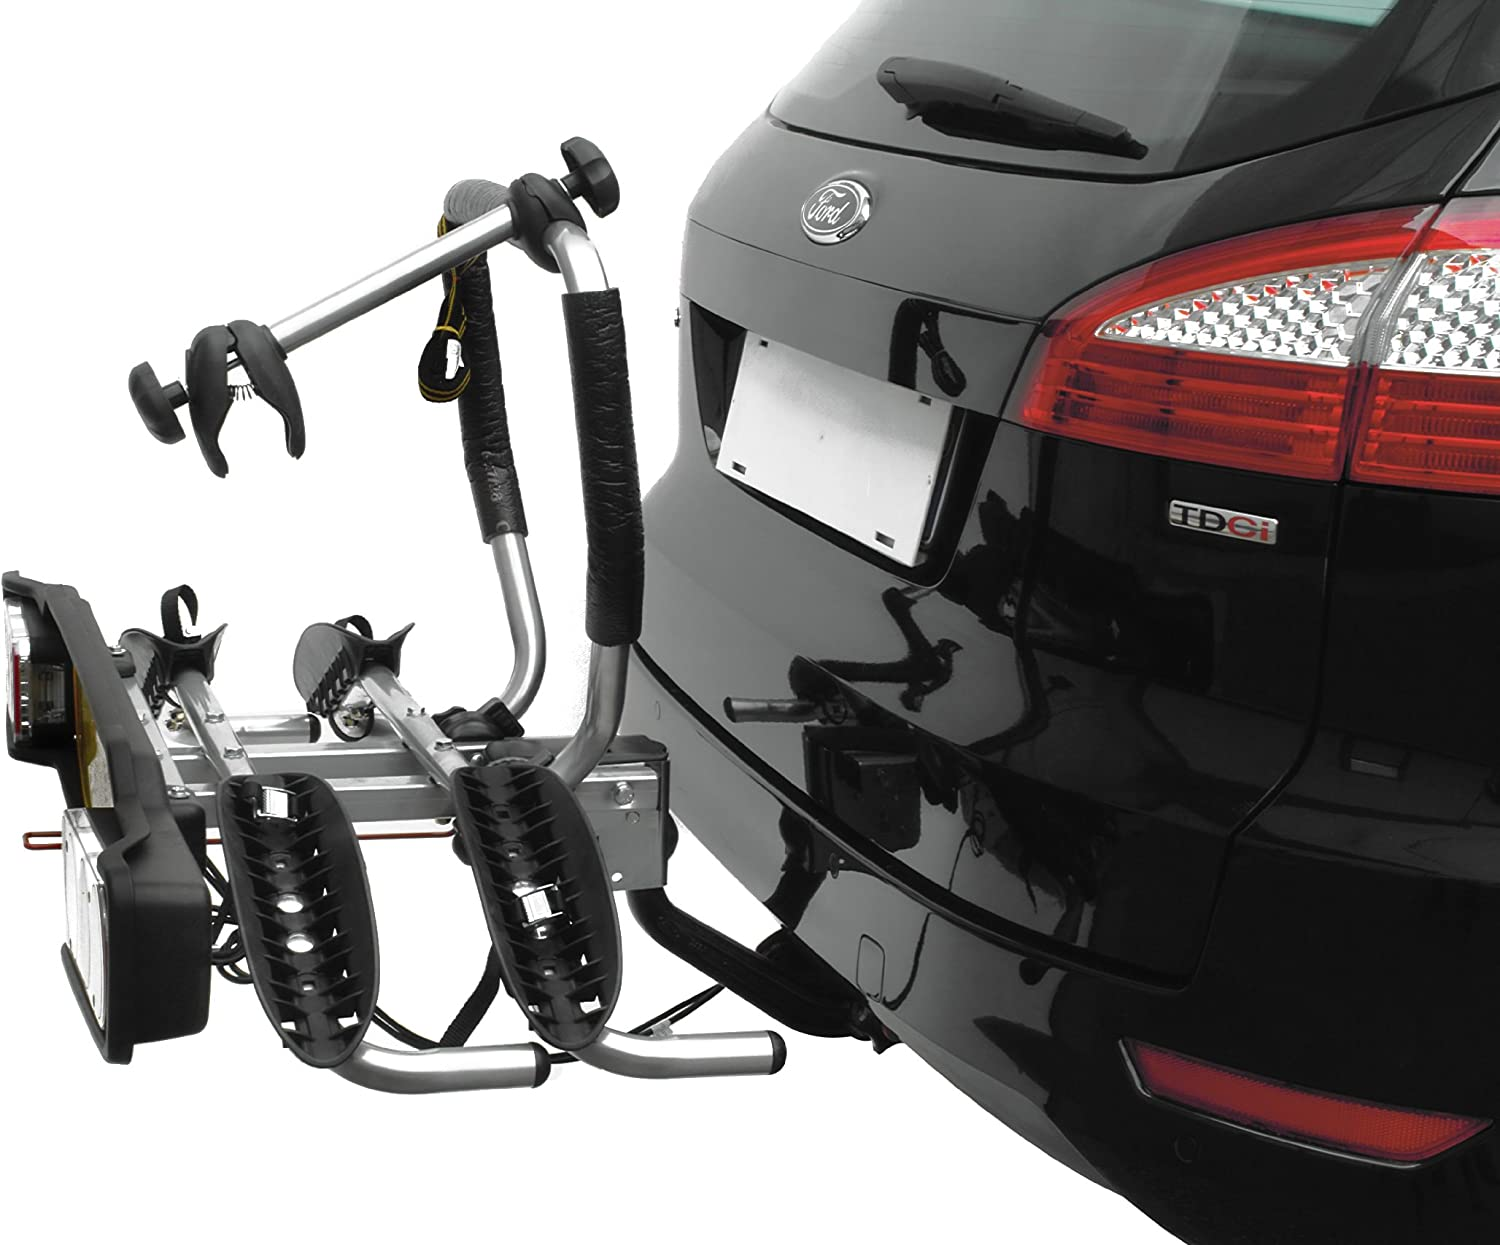 Peruzzo Siena Fixed Rack for 2 Bicycles on Trailer Coupling